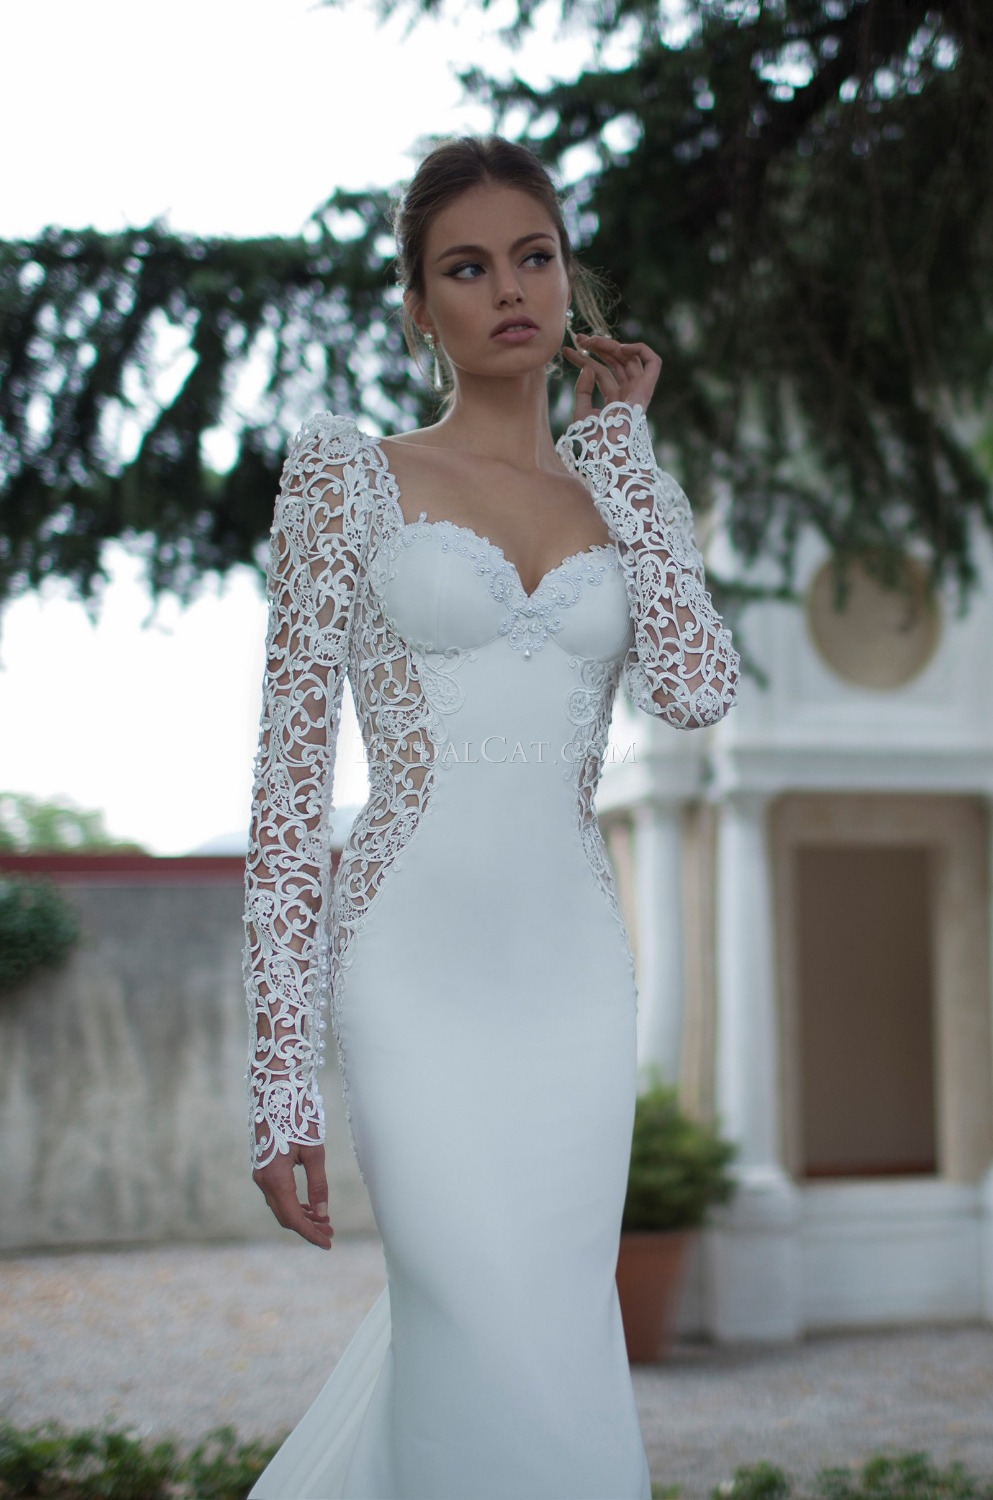 lilac wedding dress Aliexpress com Buy Lebanon Designer Style Cap Sleeve Sexy Low Back Sequence Beads Laces Patterns Wedding Dresses Spring XT from Reliable dress